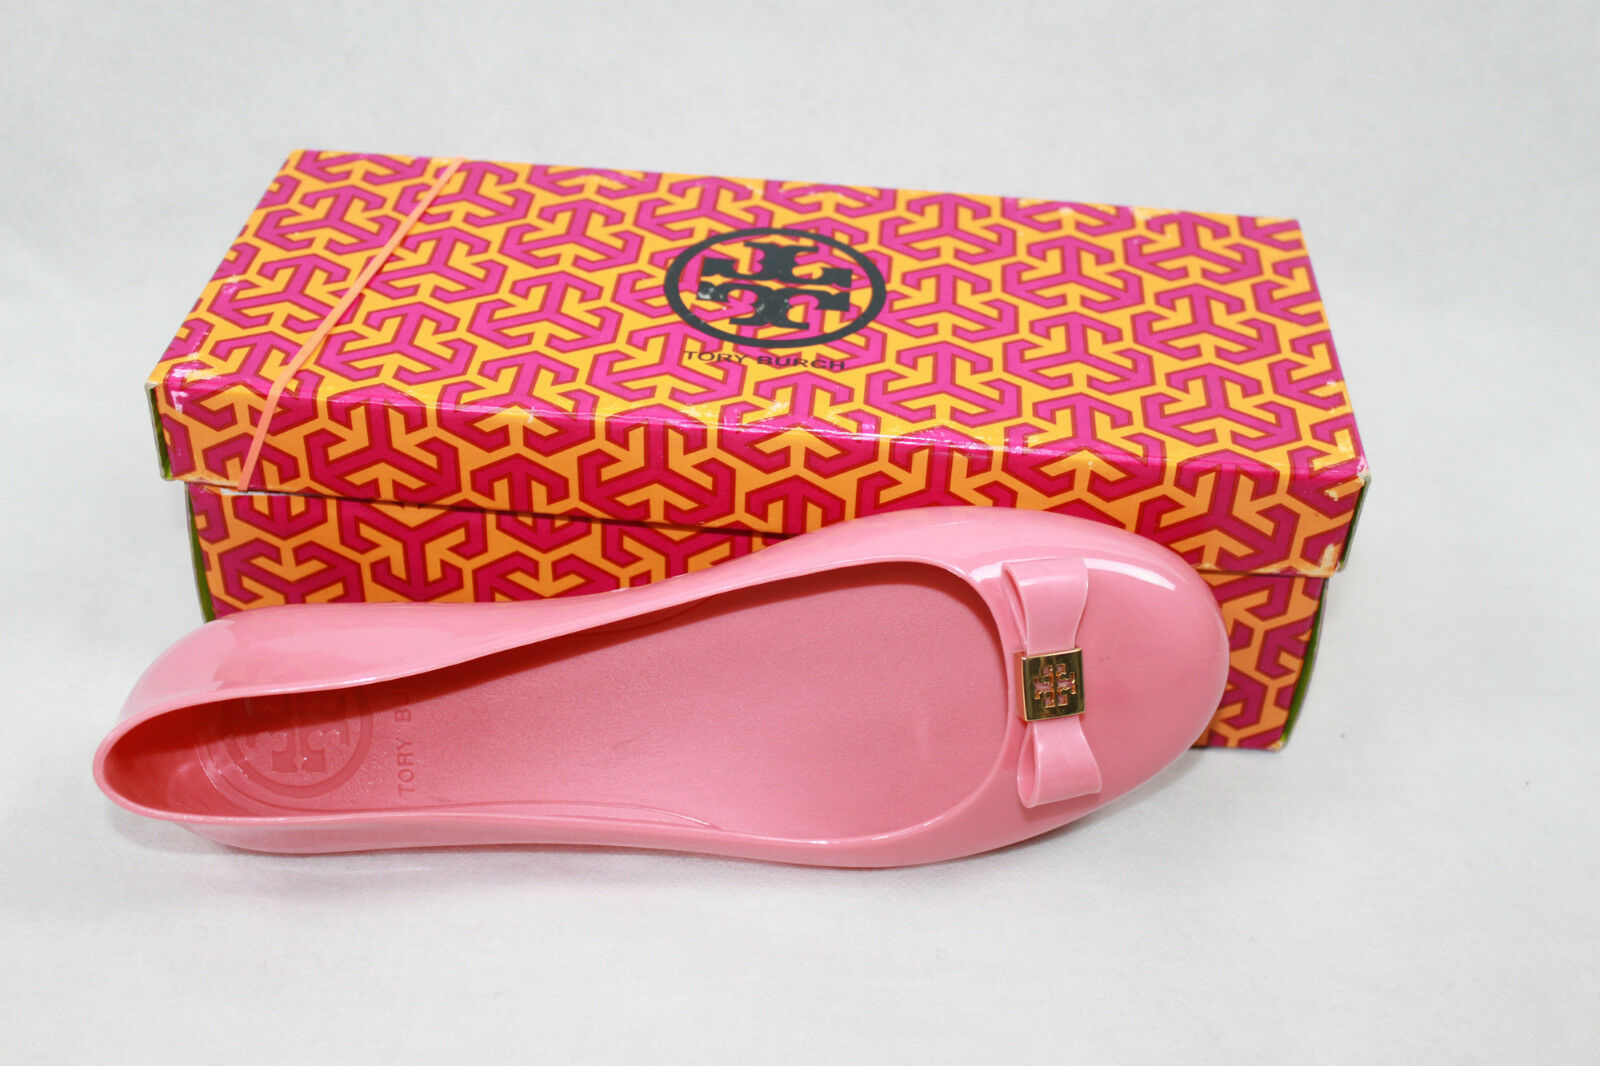 AUTH Tory Burch Damens Pink Jelly Flat Schuhes